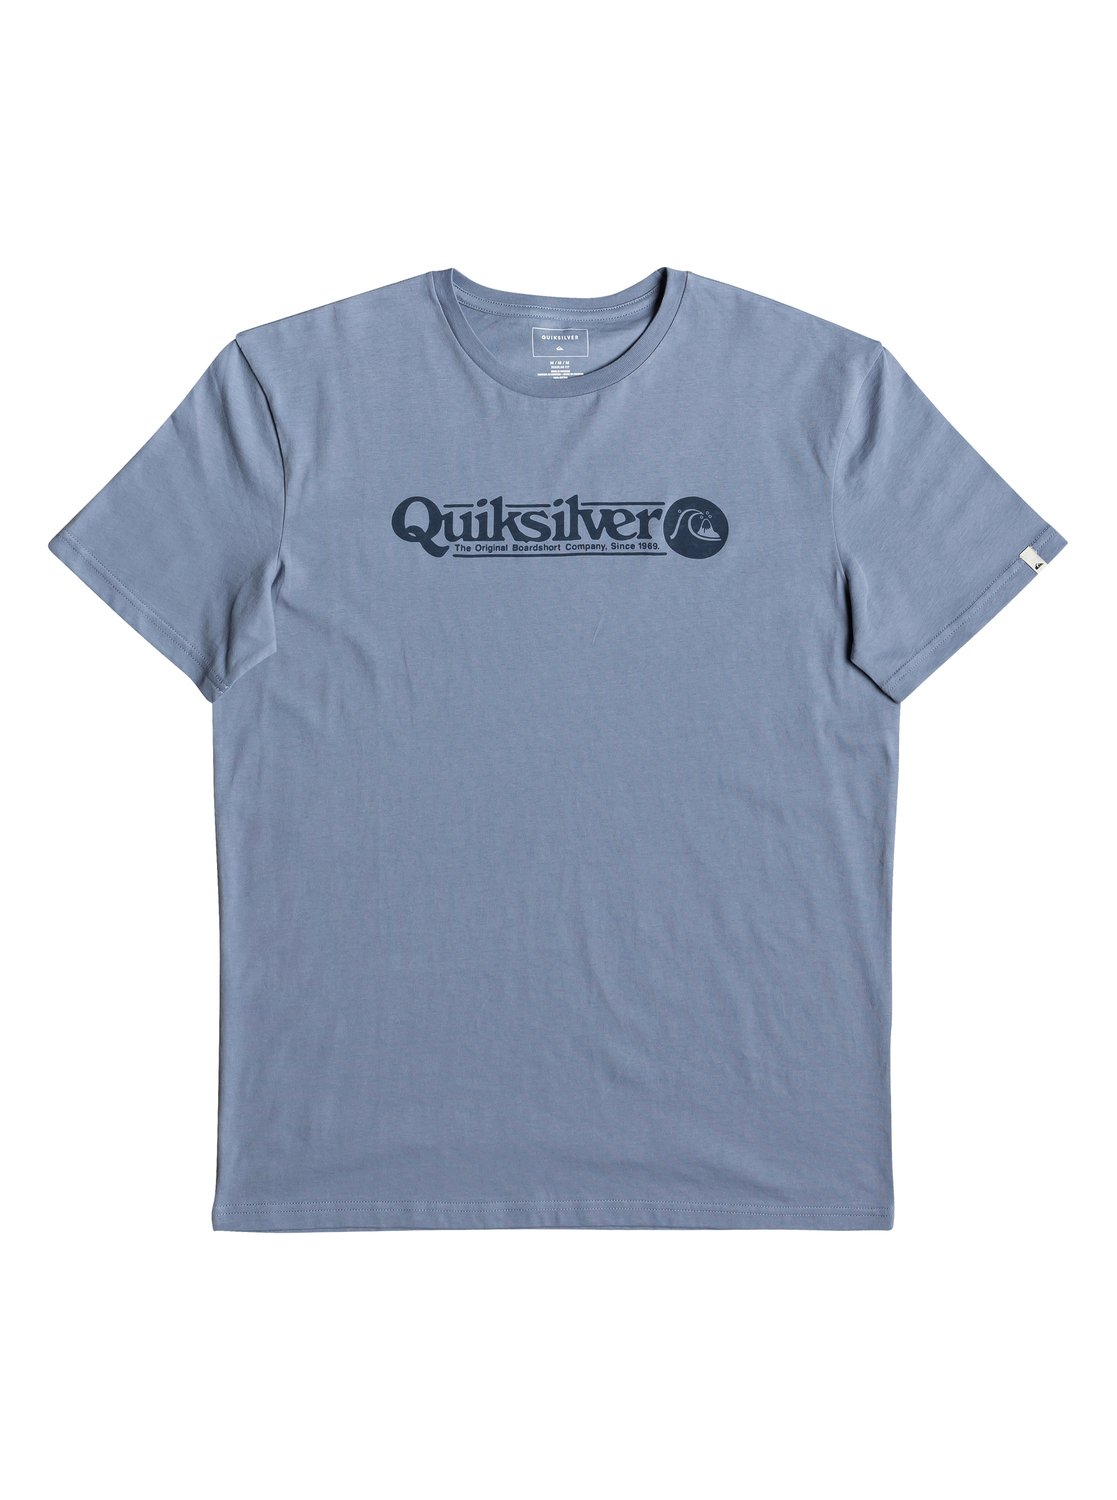 Quiksilver-Art-Tickle-T-shirt-pour-Homme-EQYZT05259 miniature 12